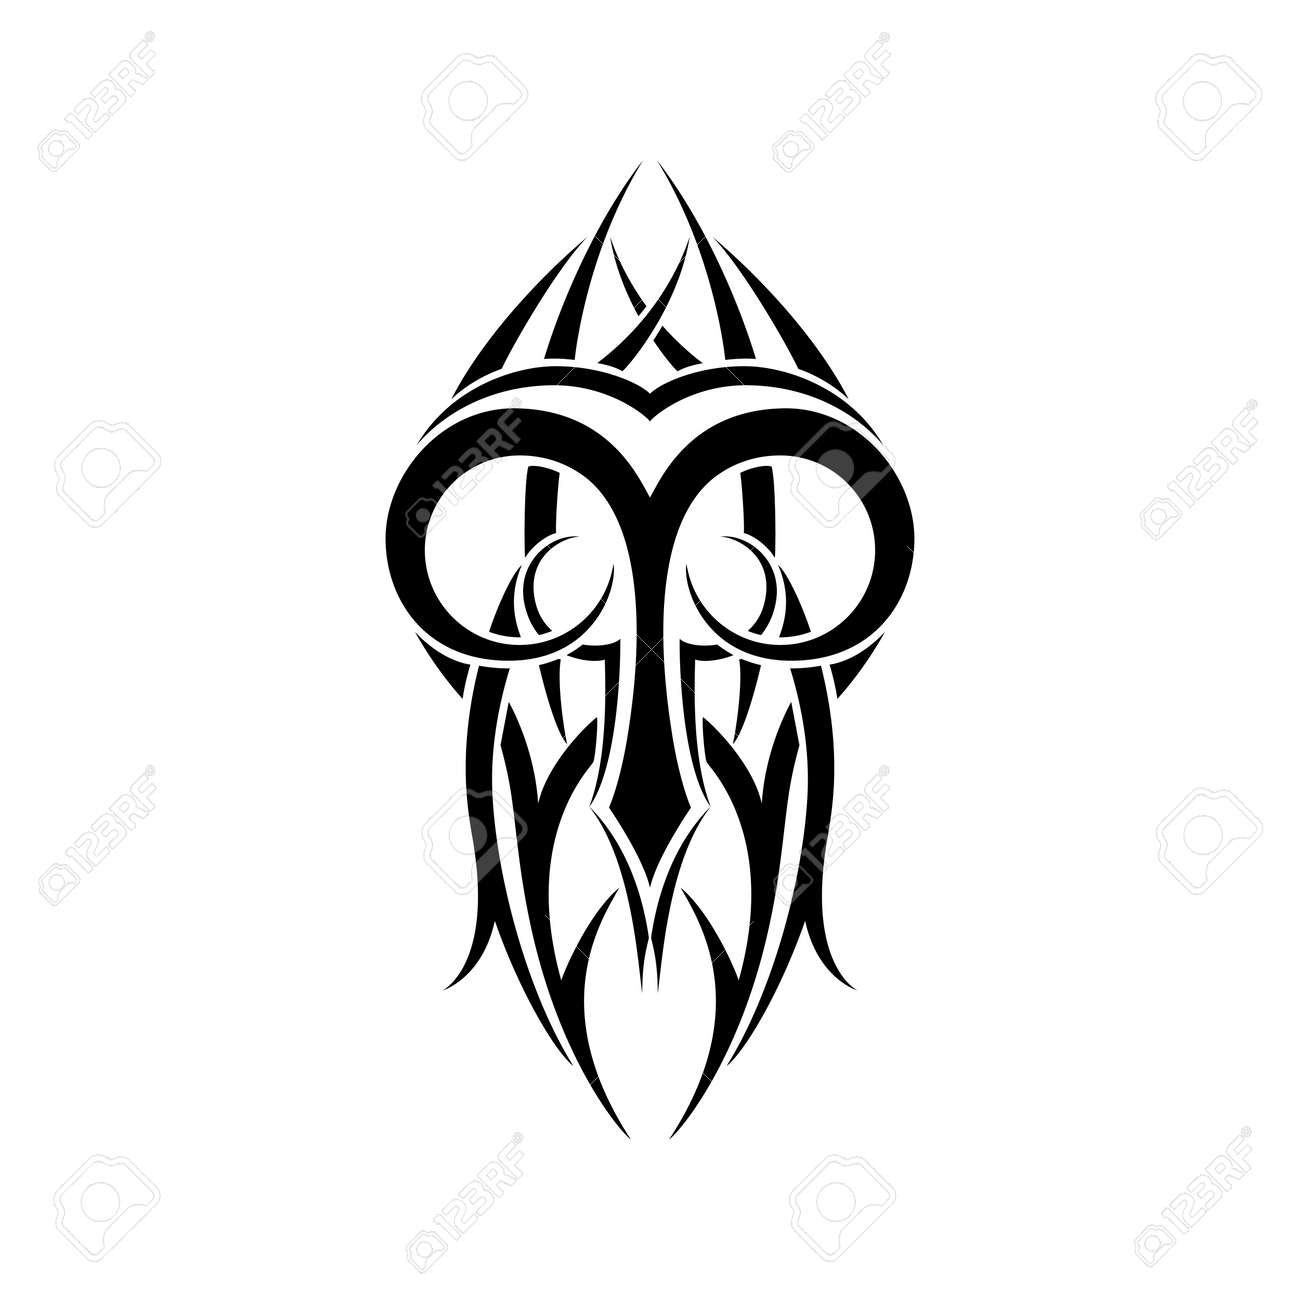 Genoeg Aries Zodiac. Abstract Tribal Tattoo Design. Royalty Free Cliparts &FB91